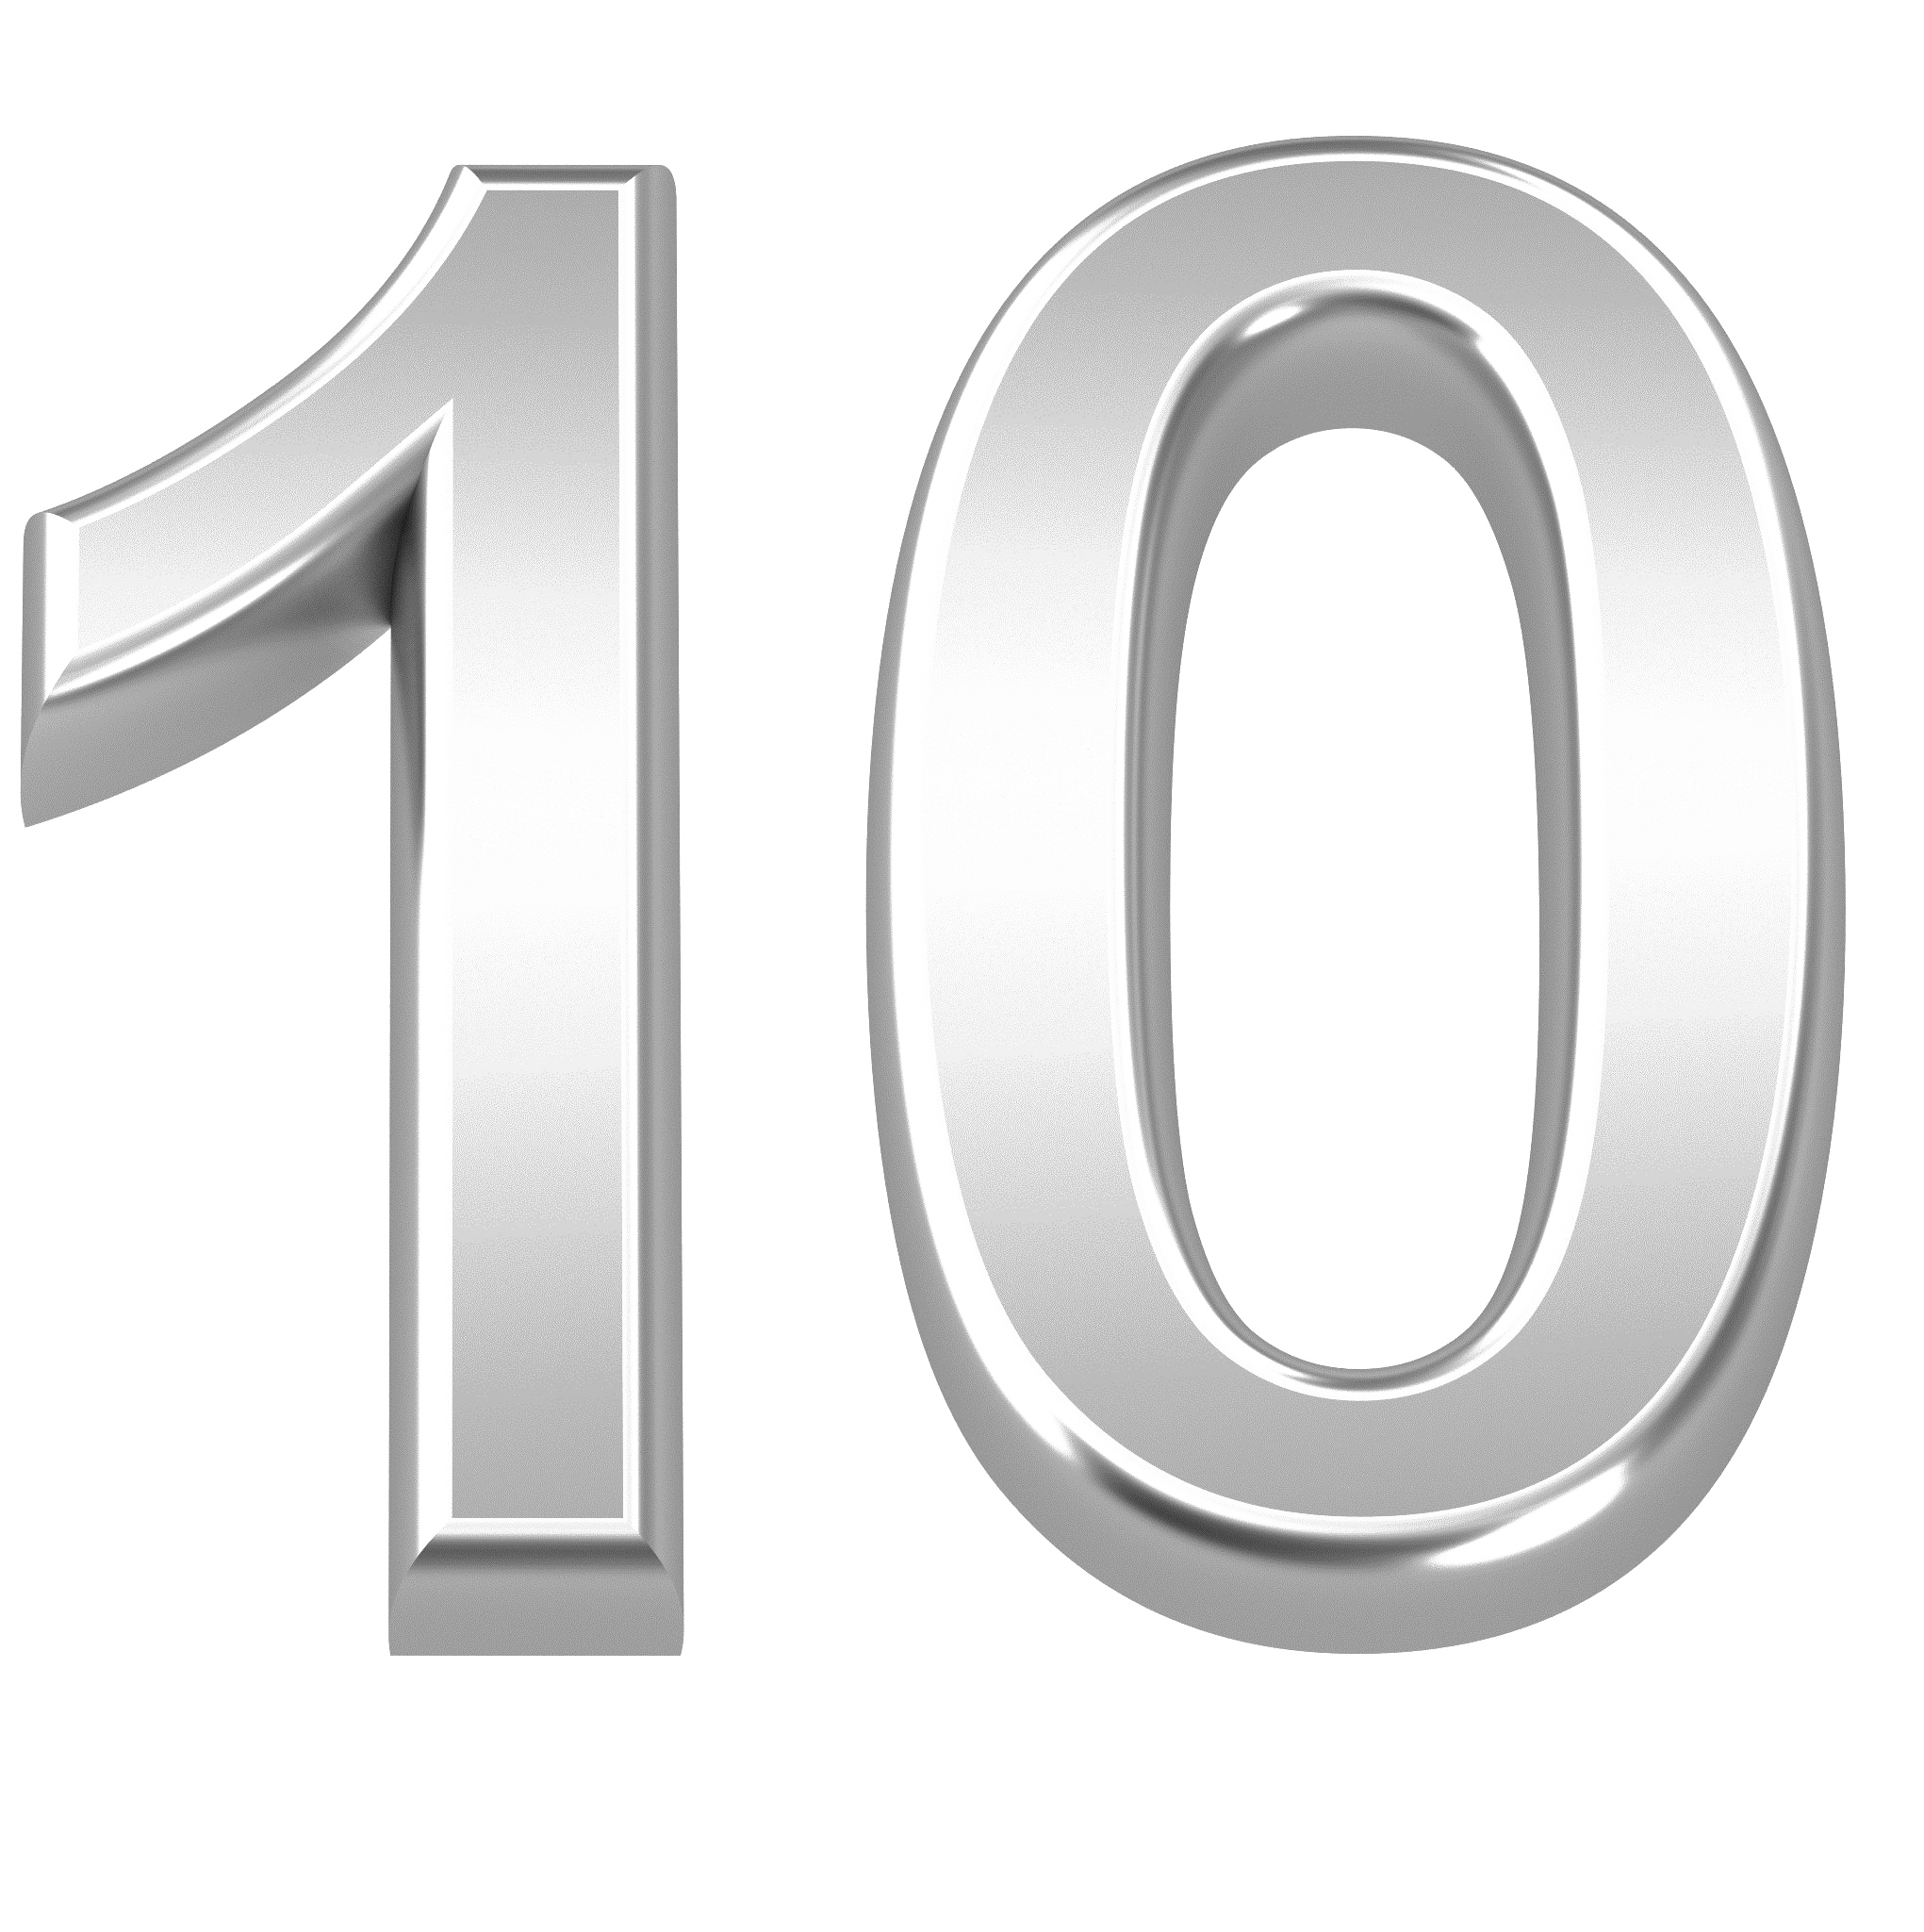 10 Number PNG Picture.